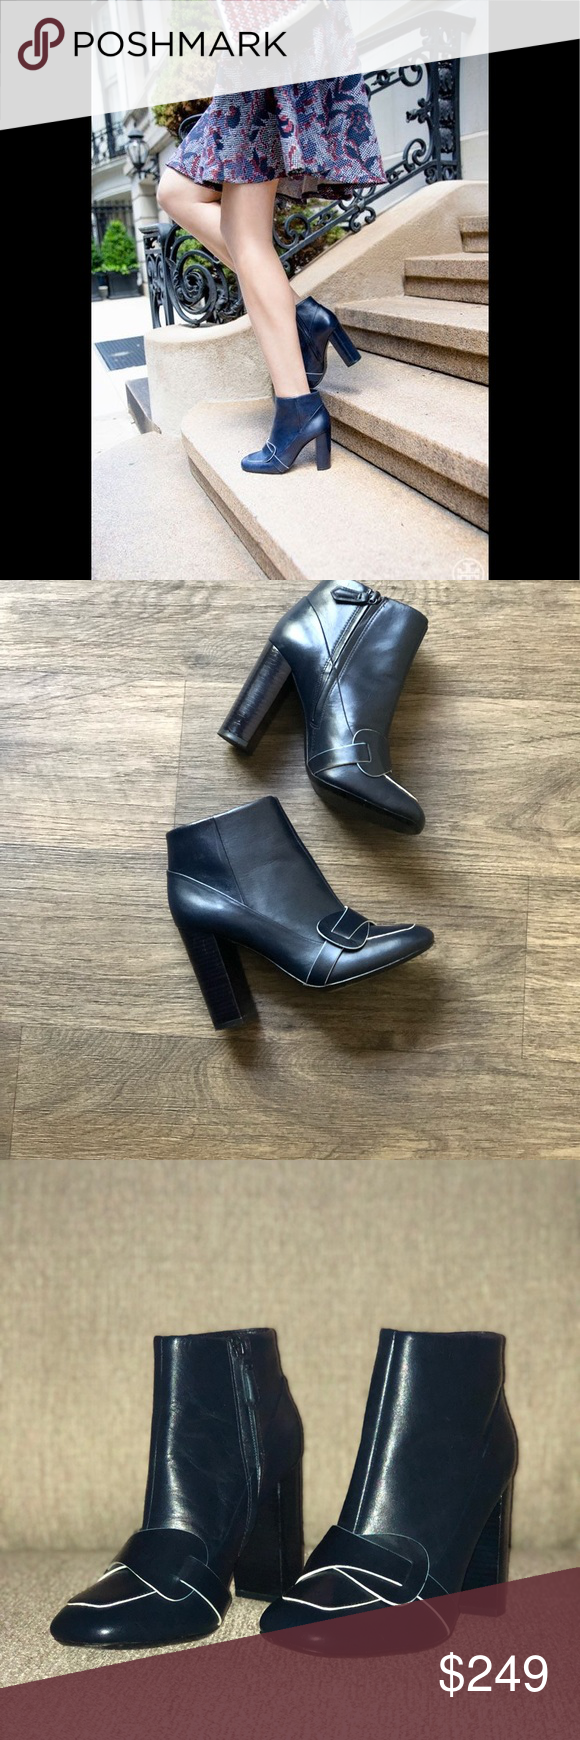 ad463a893  SUPER CUTE  Tory Burch Navy Blue Bond Booties SOLD OUT EVERYWHERE Tory  Burch Navy Blue Bond Booties! Blue leather Squared toe 4